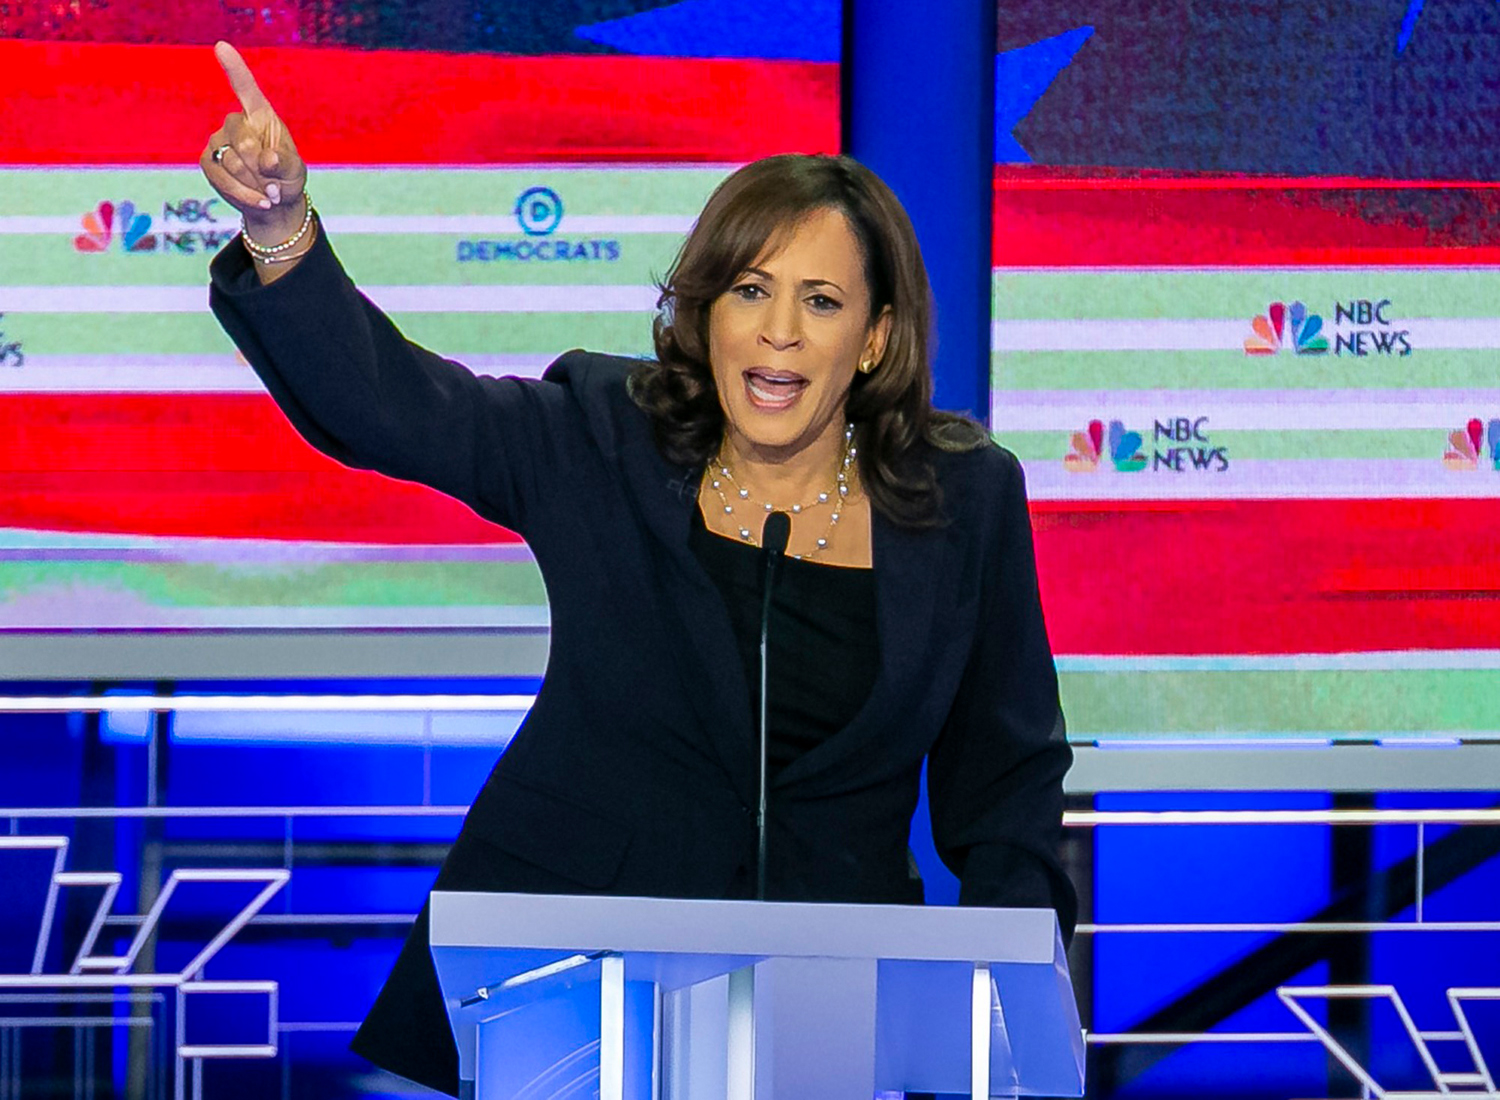 Democratic presidential candidate Sen. Kamala Harris, D-Calif., speaks during the second night of the first Democratic presidential debate on Thursday, June 27, at the Arsht Center for the Performing Arts in Miami.